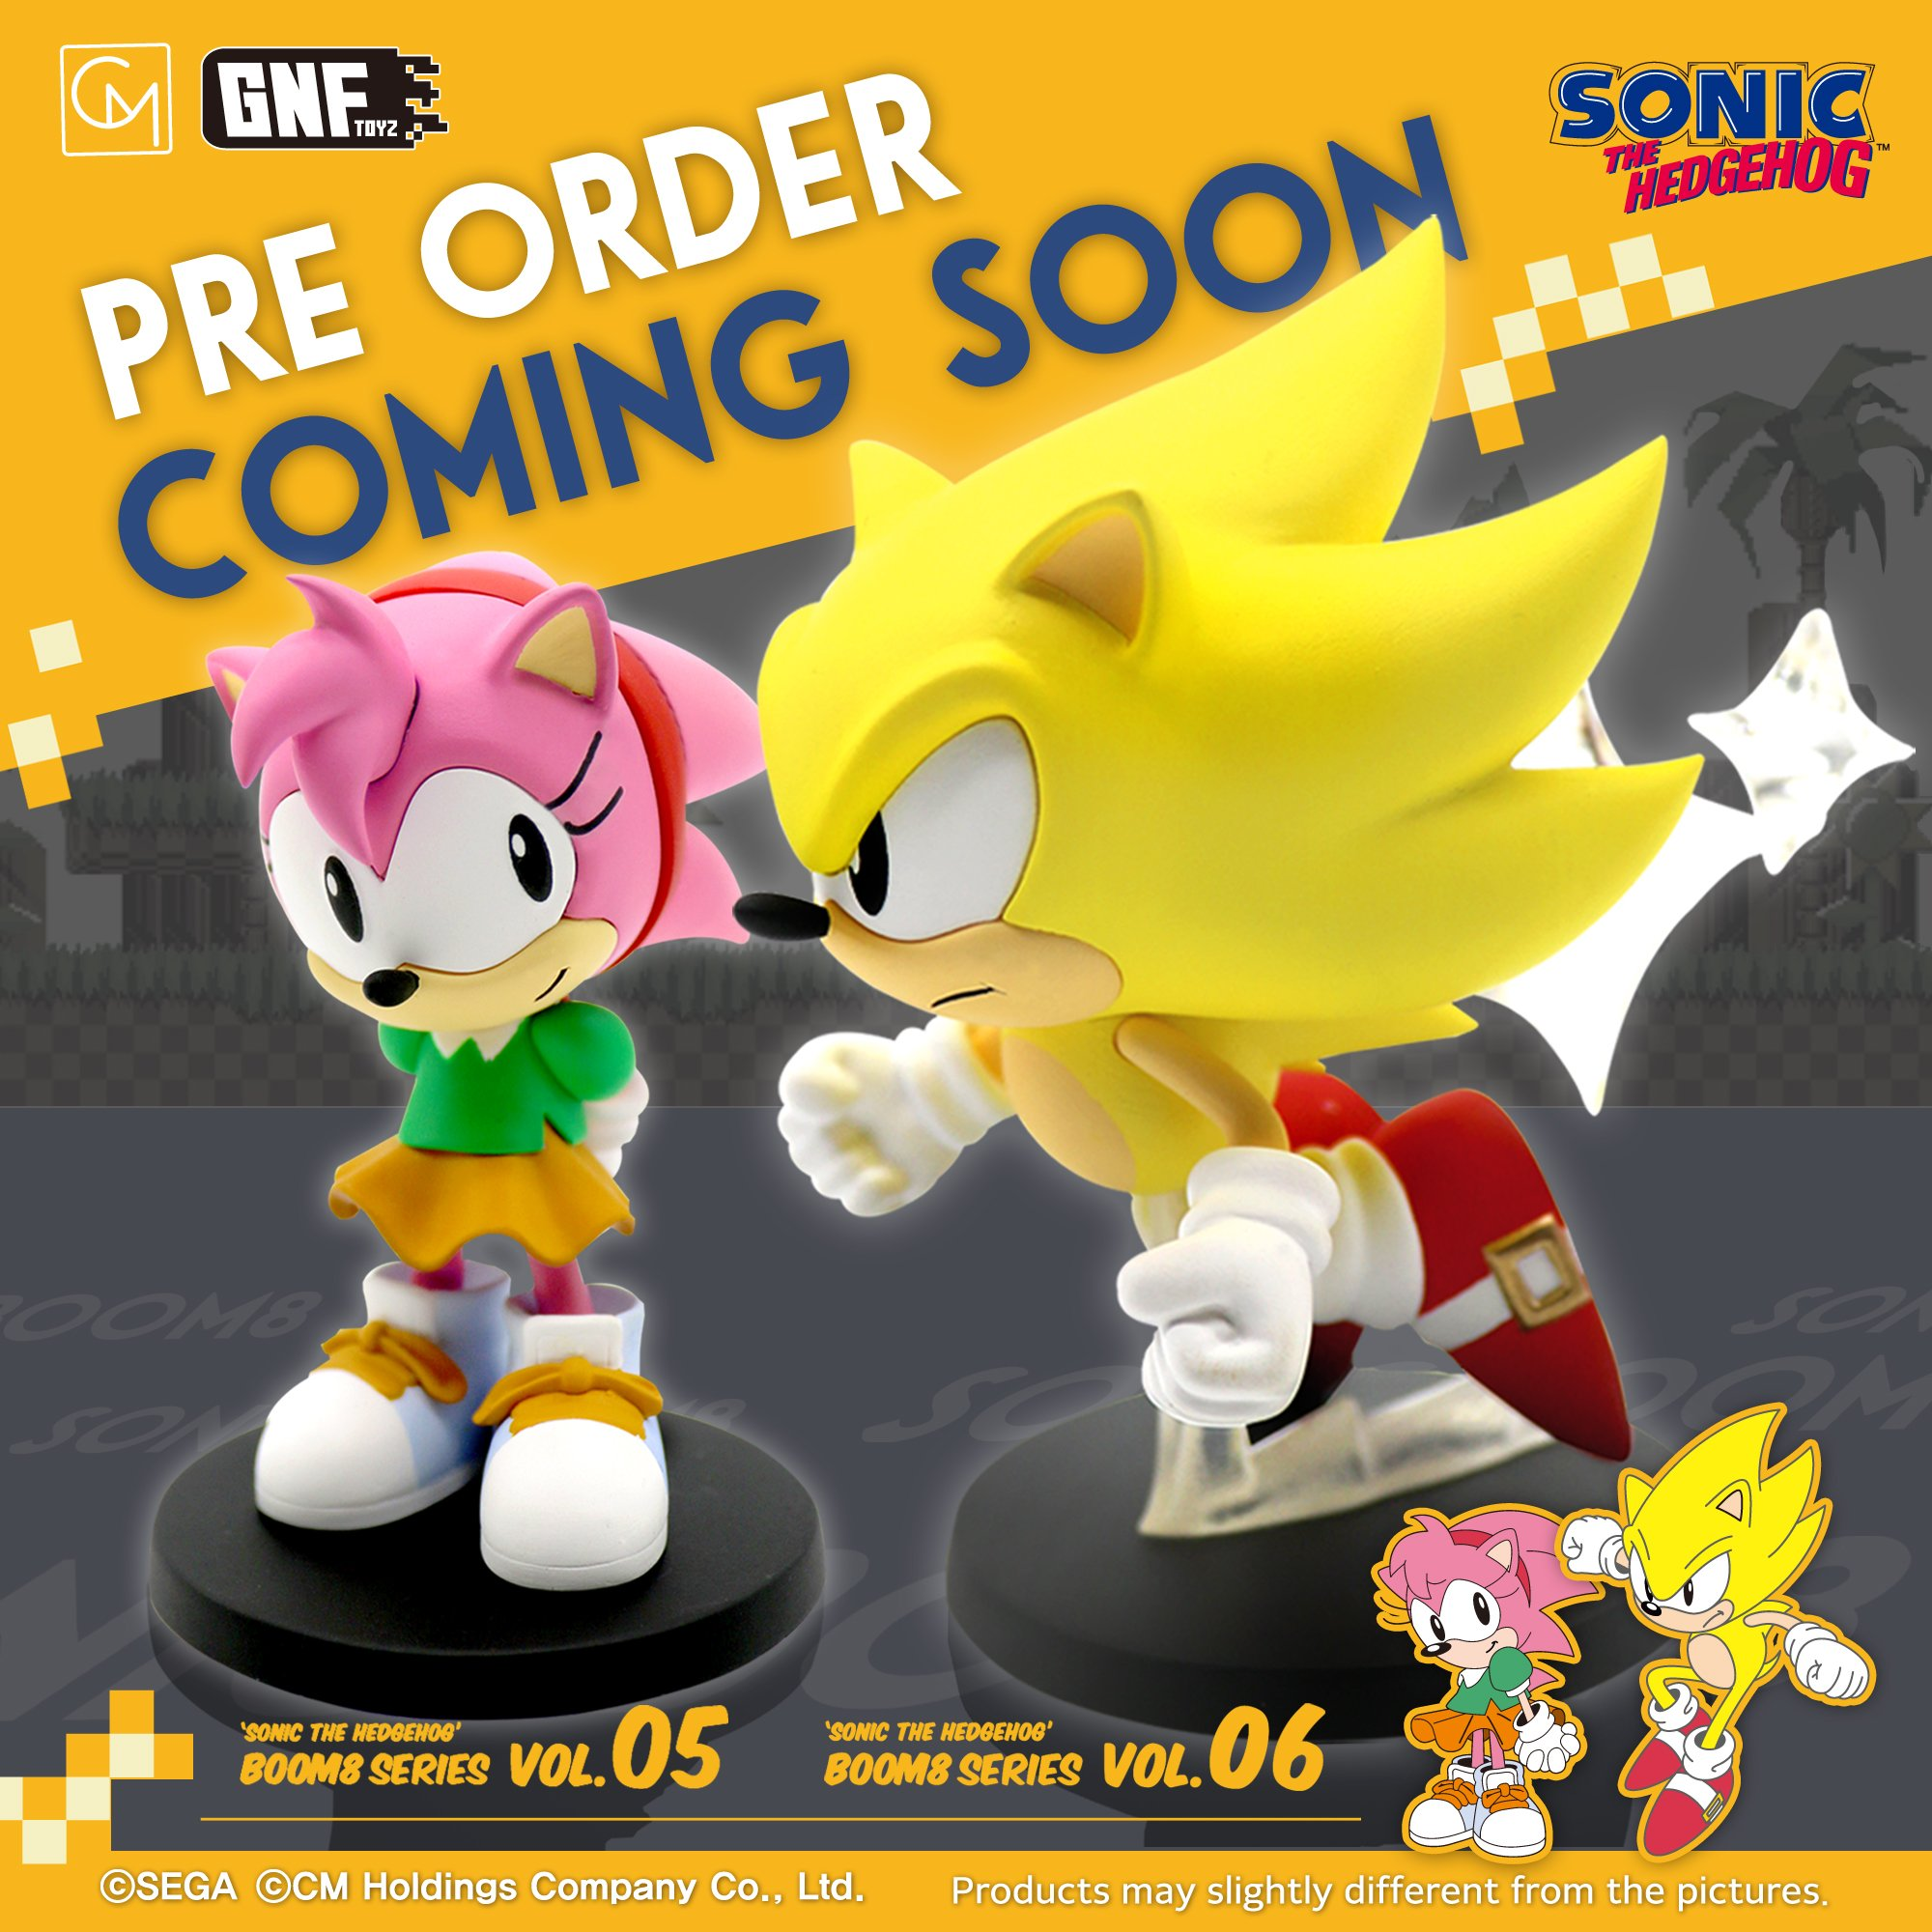 Gnftoyz On Twitter New Boom8 Series Pre Order Coming Soon Share Follow Sonic Sonicthehedgehog Amy Supersonic Sega Figure Boom8 Gnftoyz Spiderkwak F4f First4figures Https T Co Fagnzvj6bc